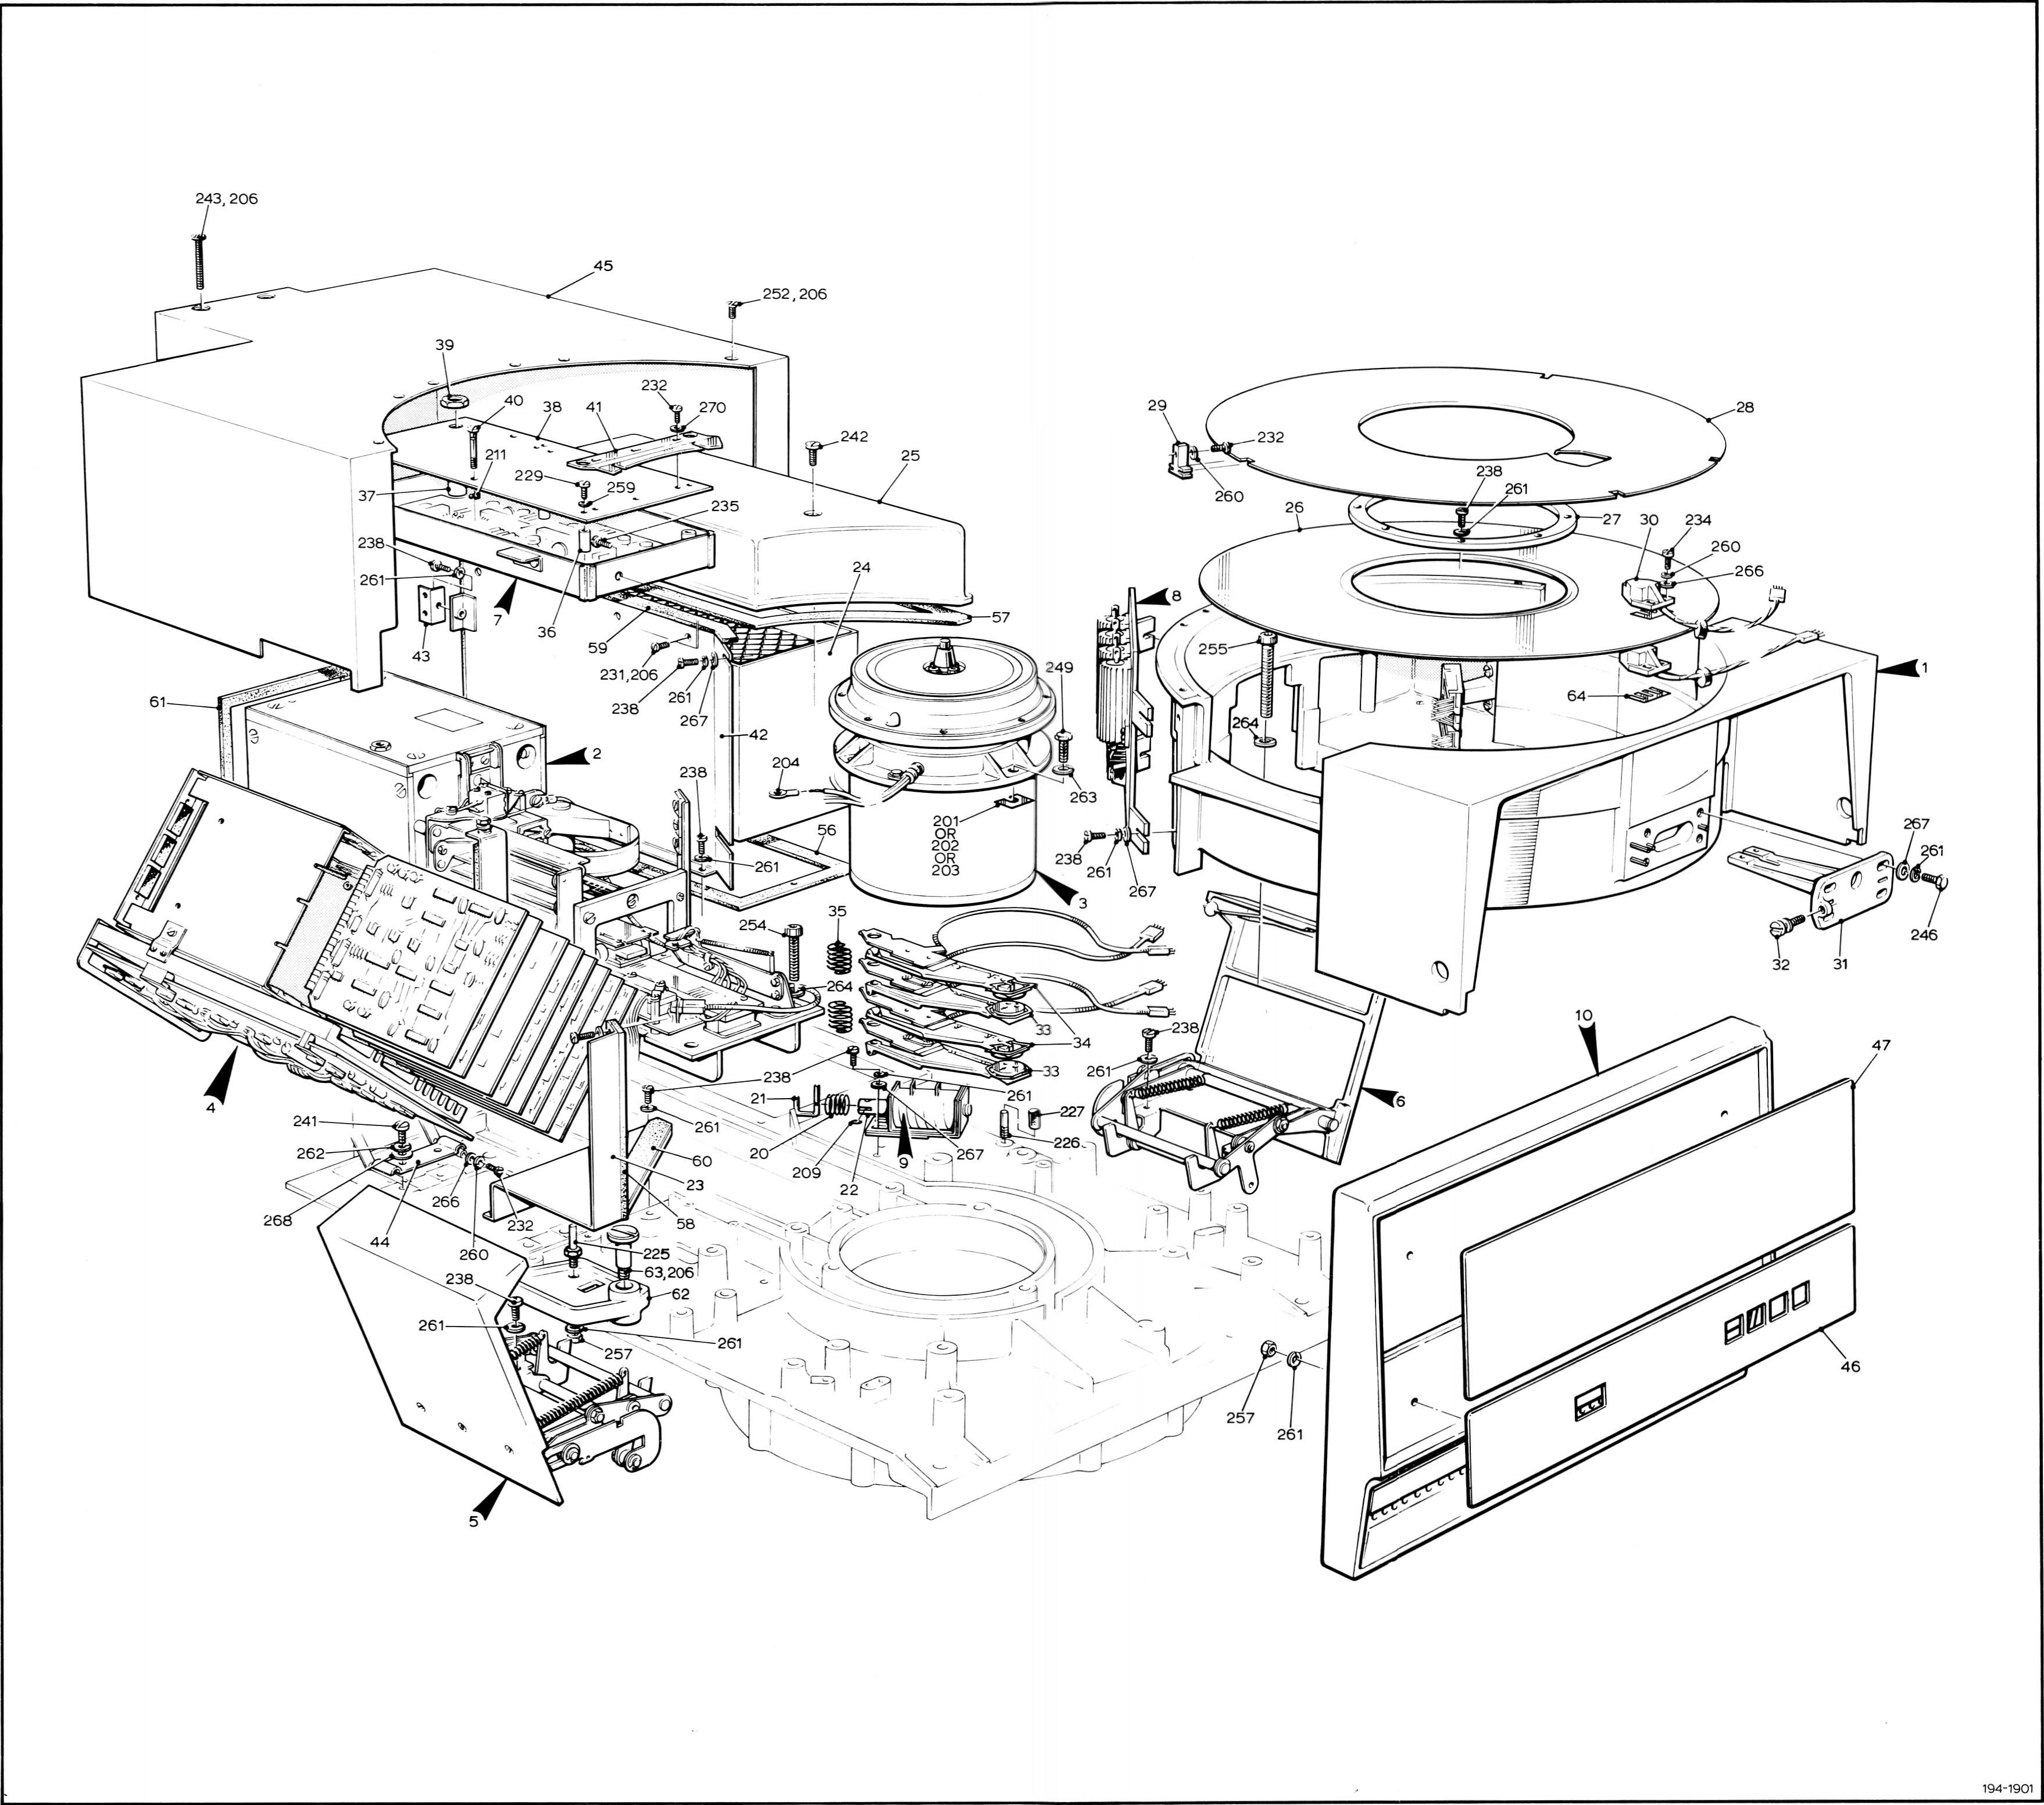 hard drive exploded view free download  u2022 playapk co